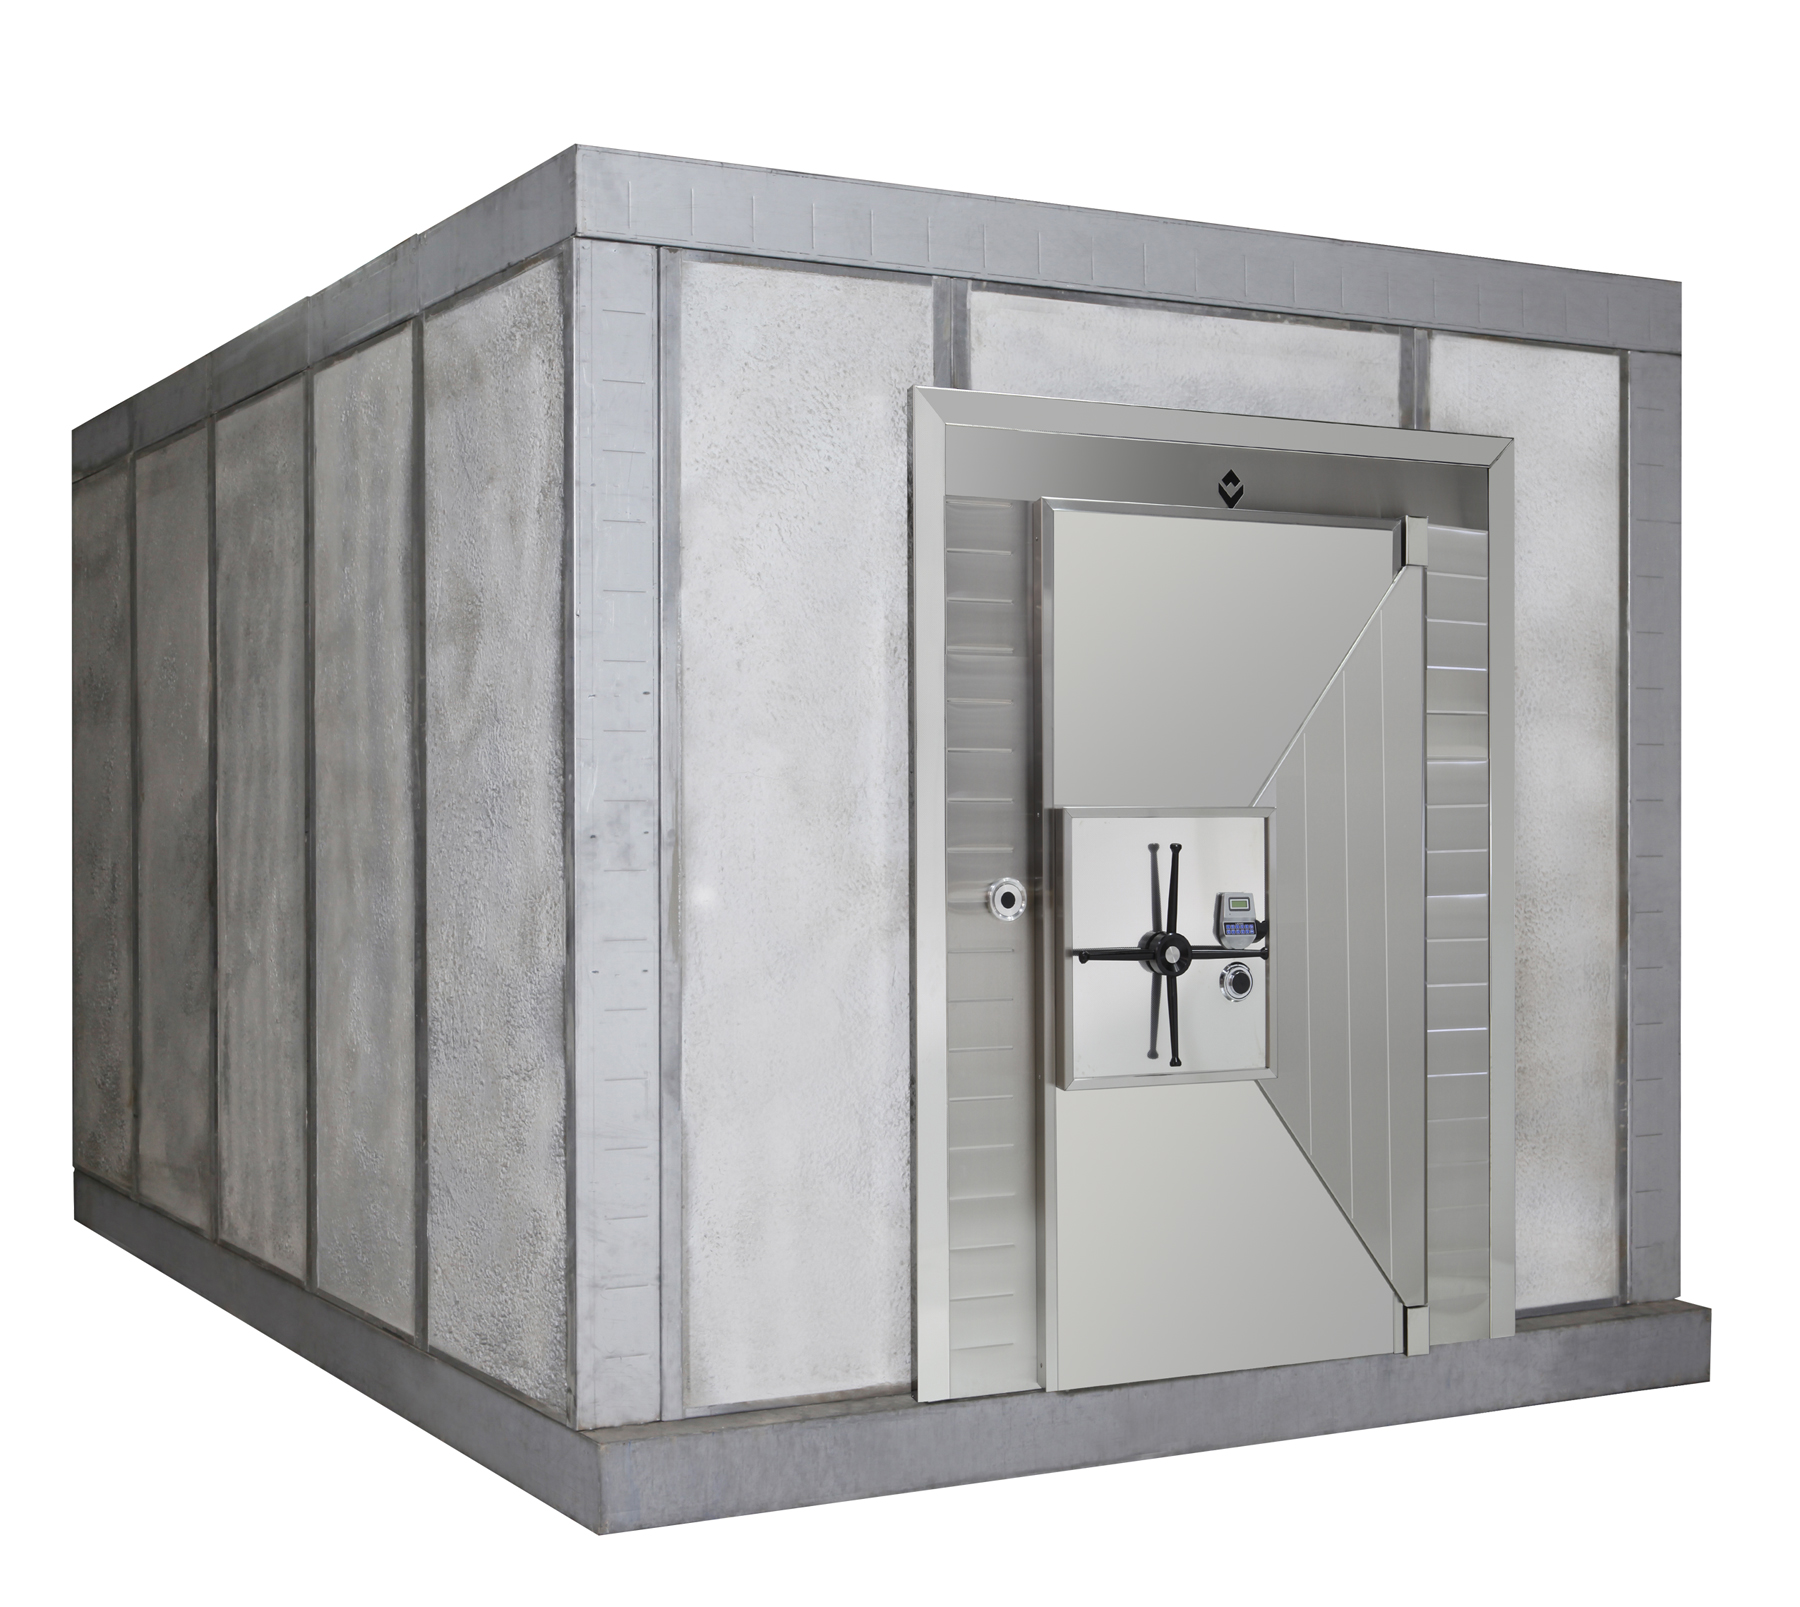 Securifort security equipment safes for Vault room construction